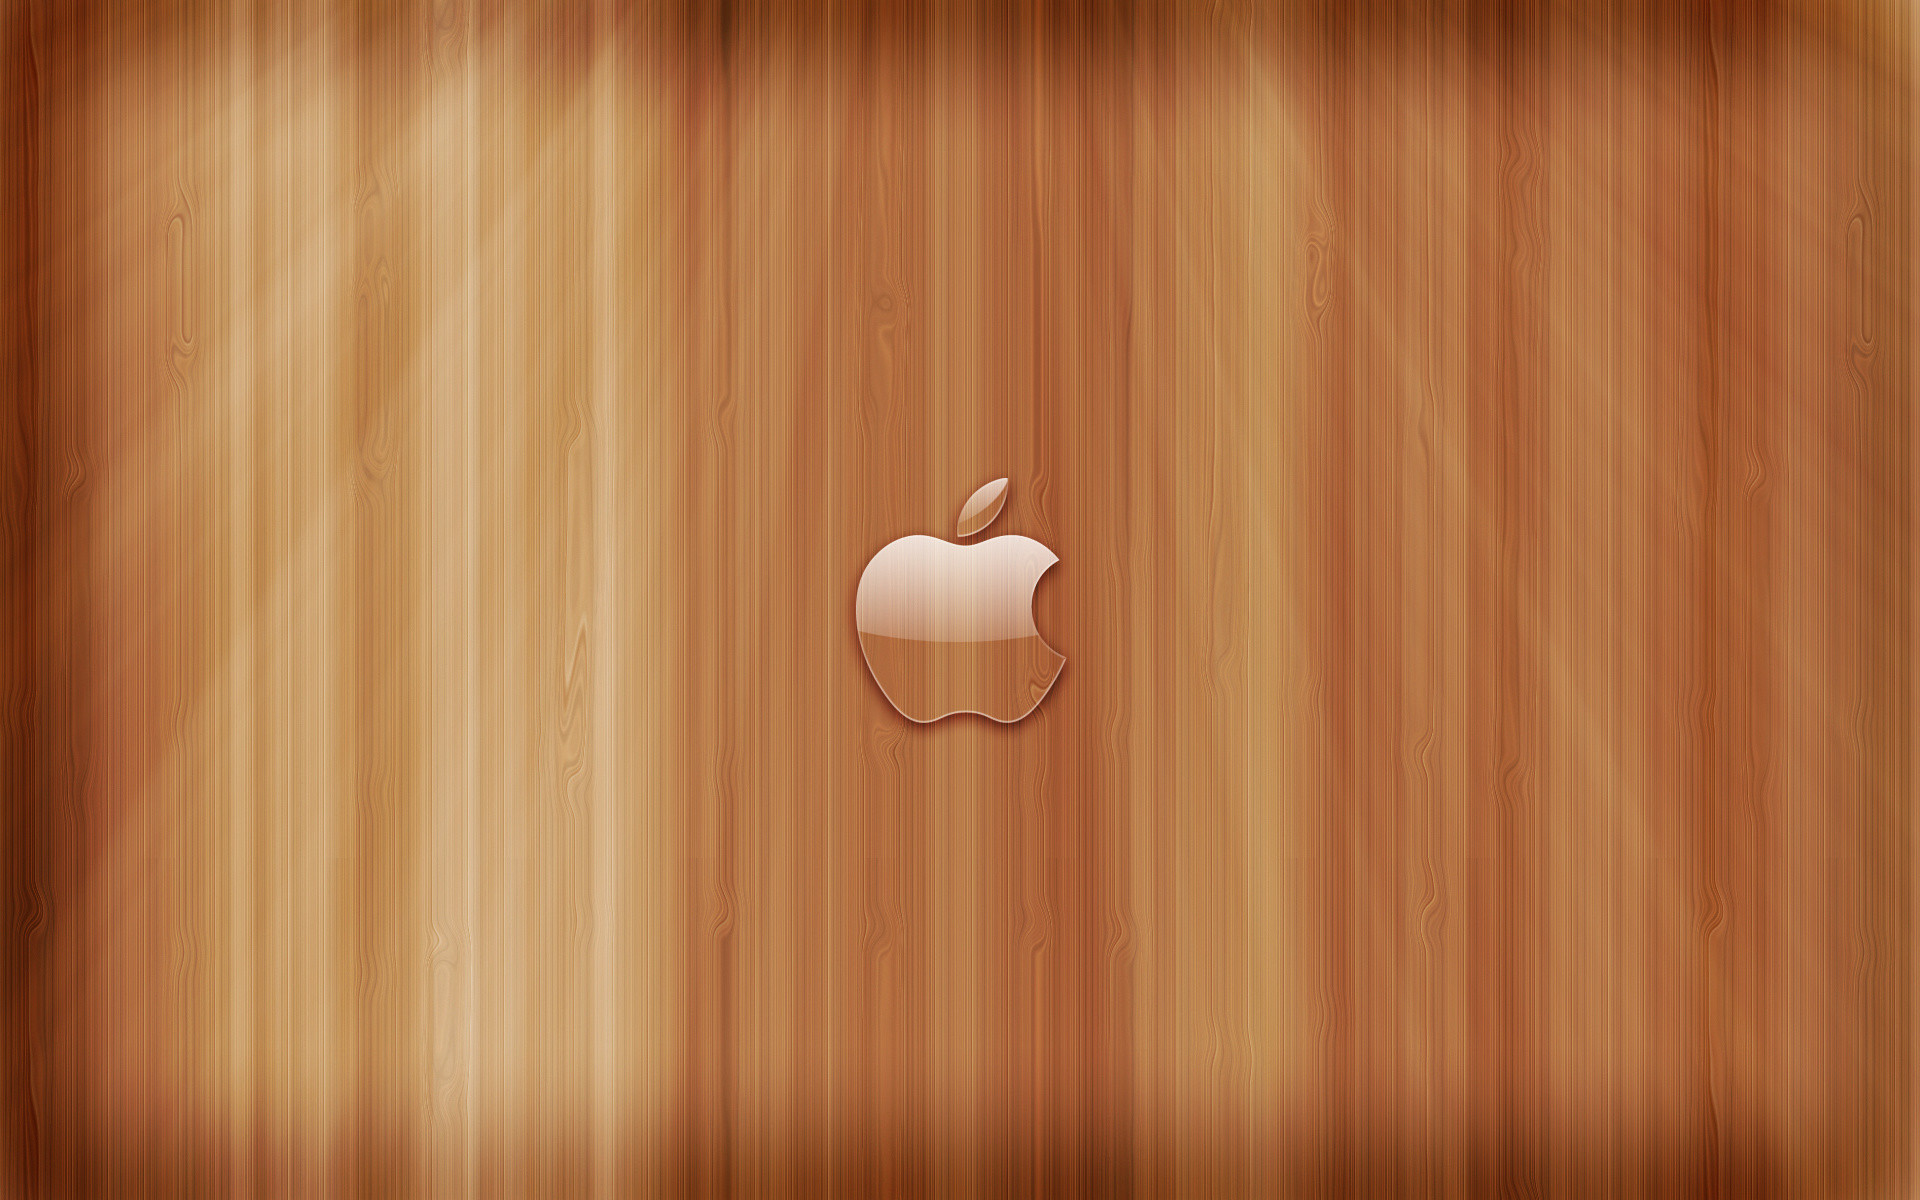 1920x1200 Apple Logo Wallpaper #applelogowallpaper